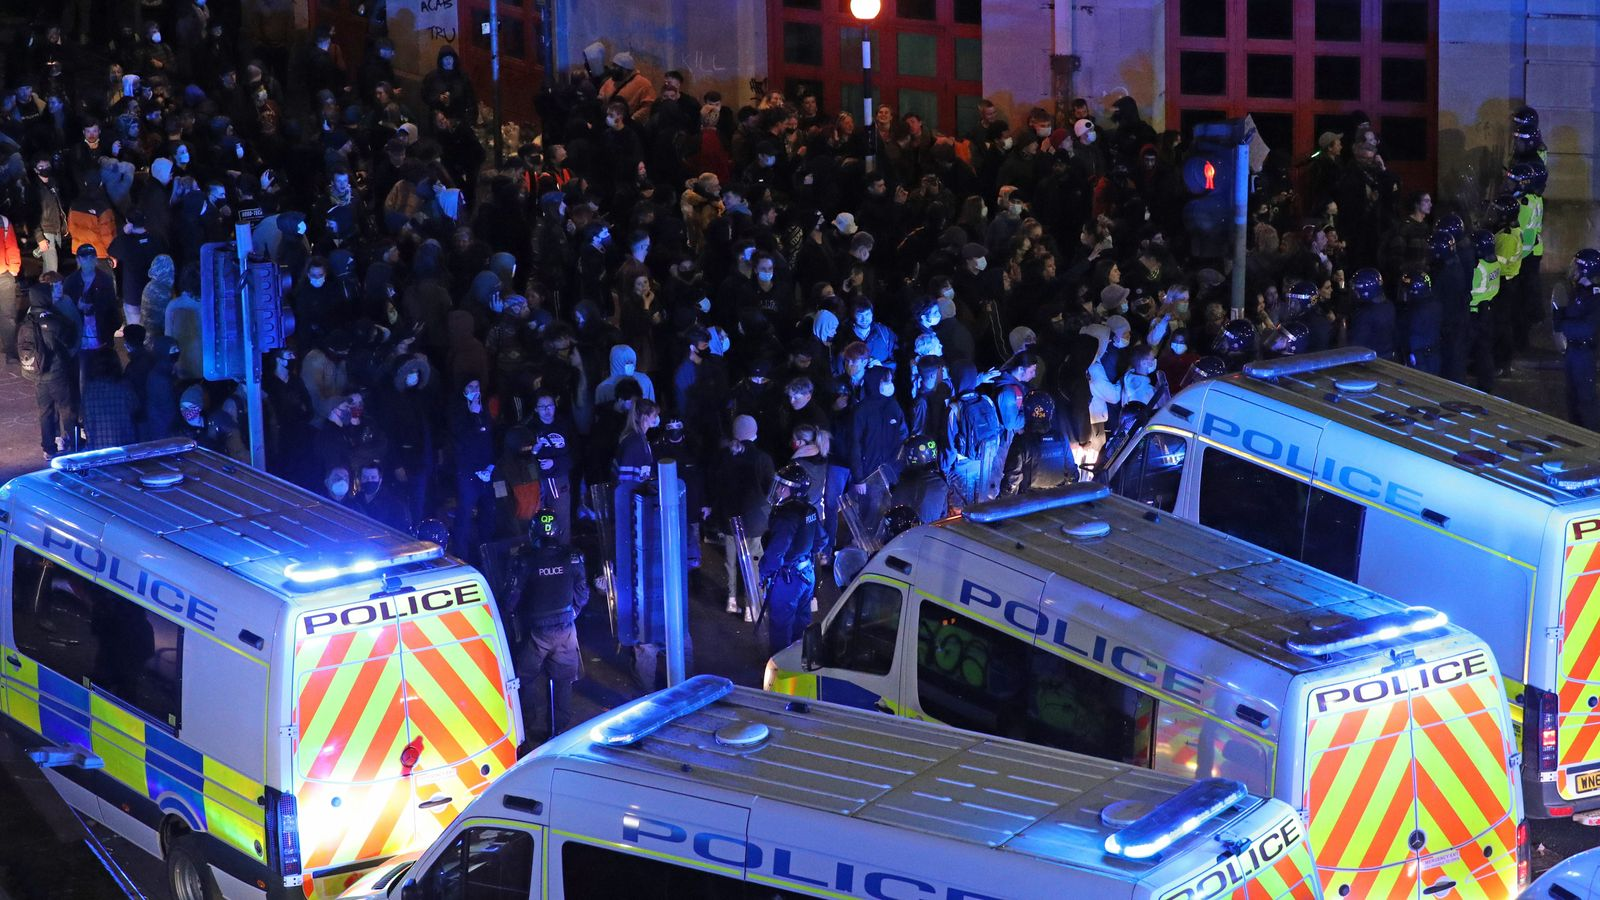 Bristol 'Kill the Bill' riot: Five sentenced over unrest outside Bridewell police station